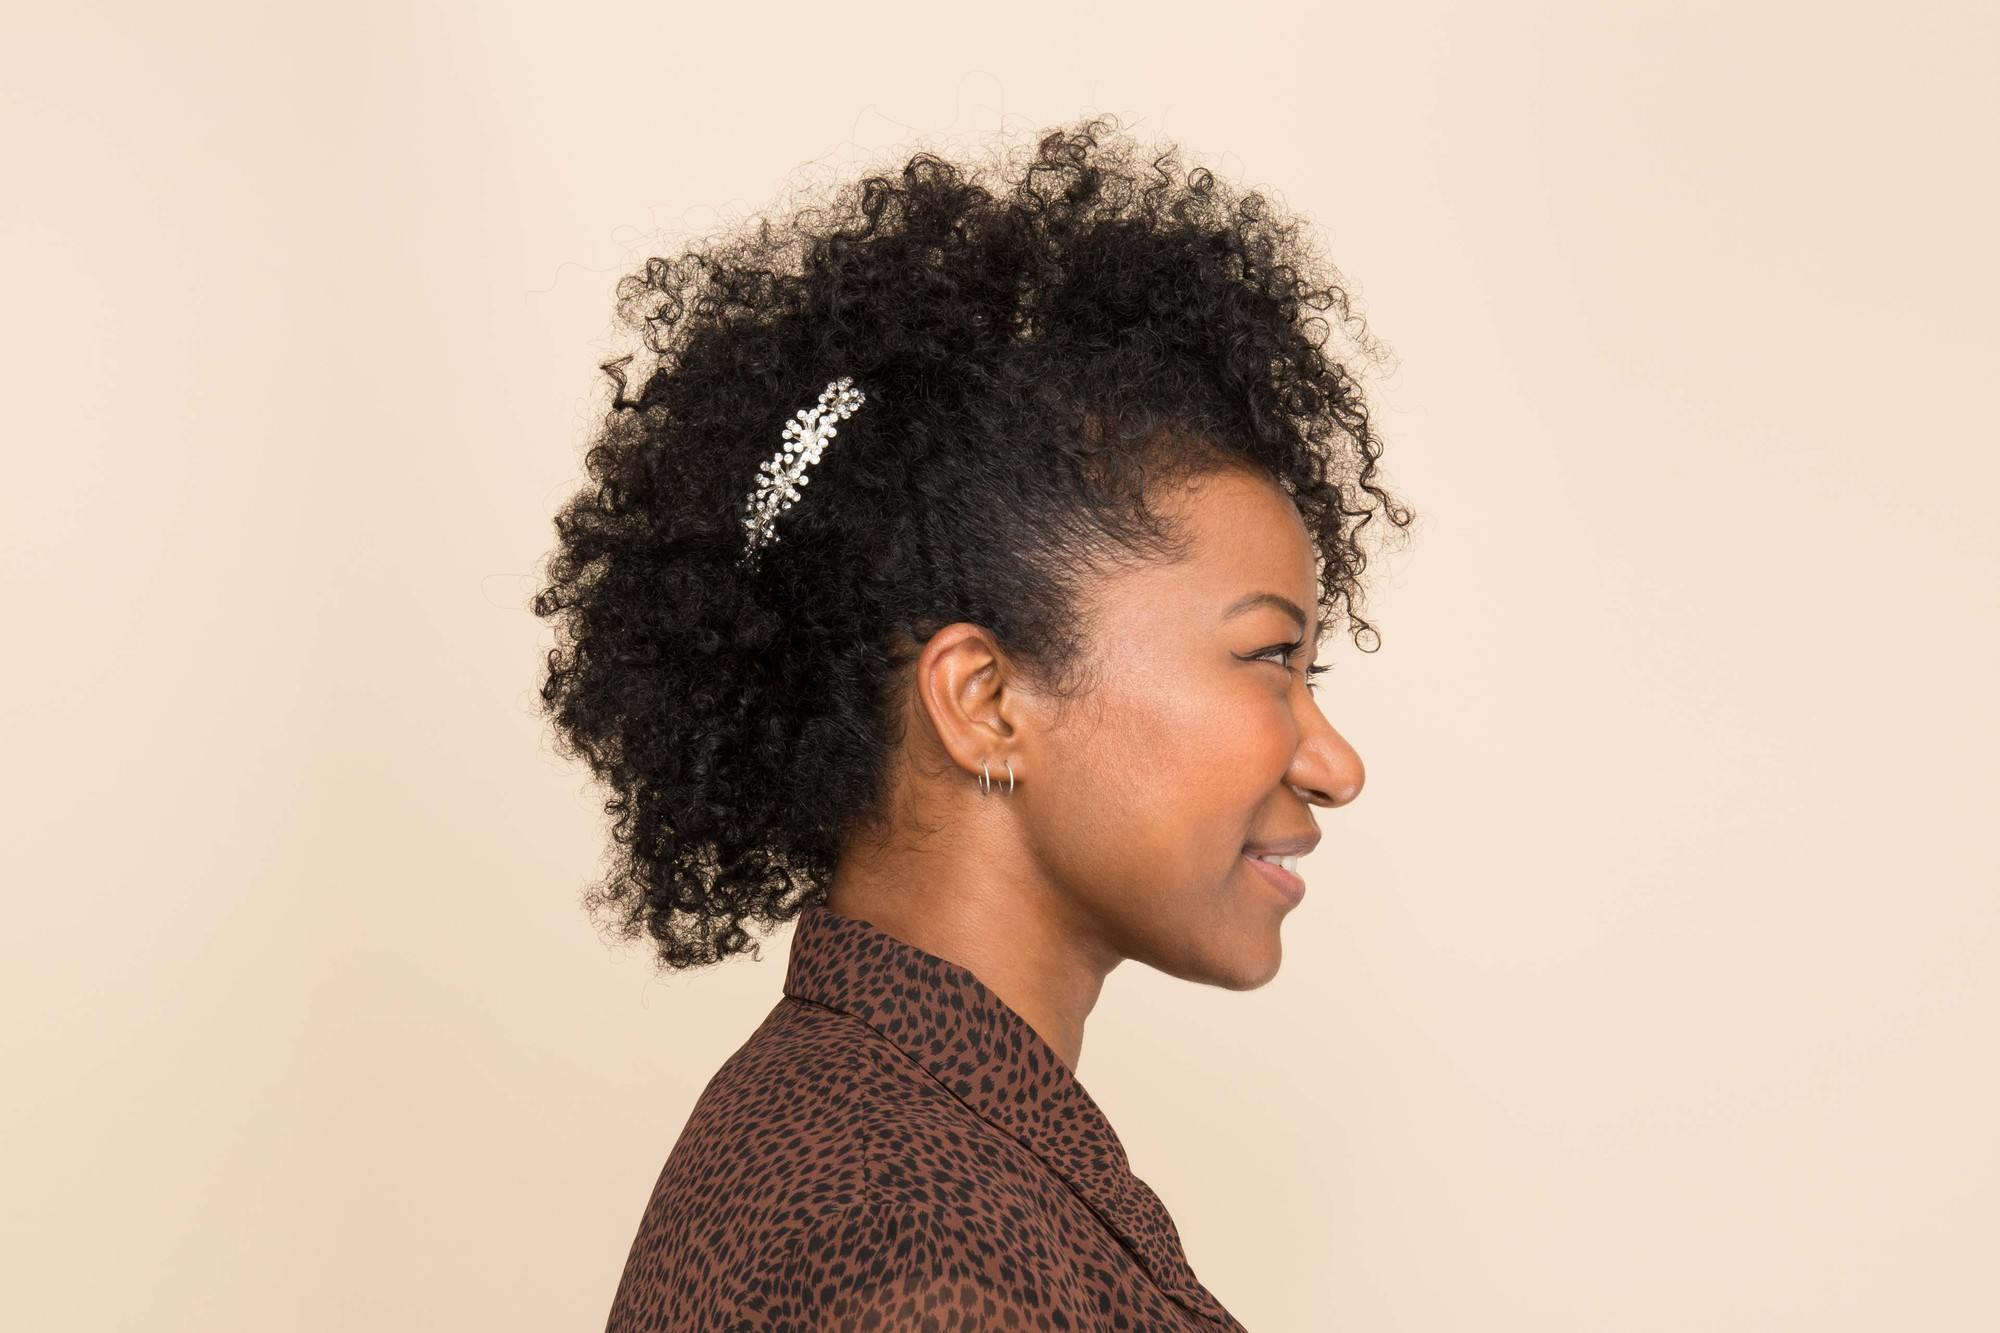 All Natural Hair Styles: 5 Easy Natural Hairstyles For Beginners